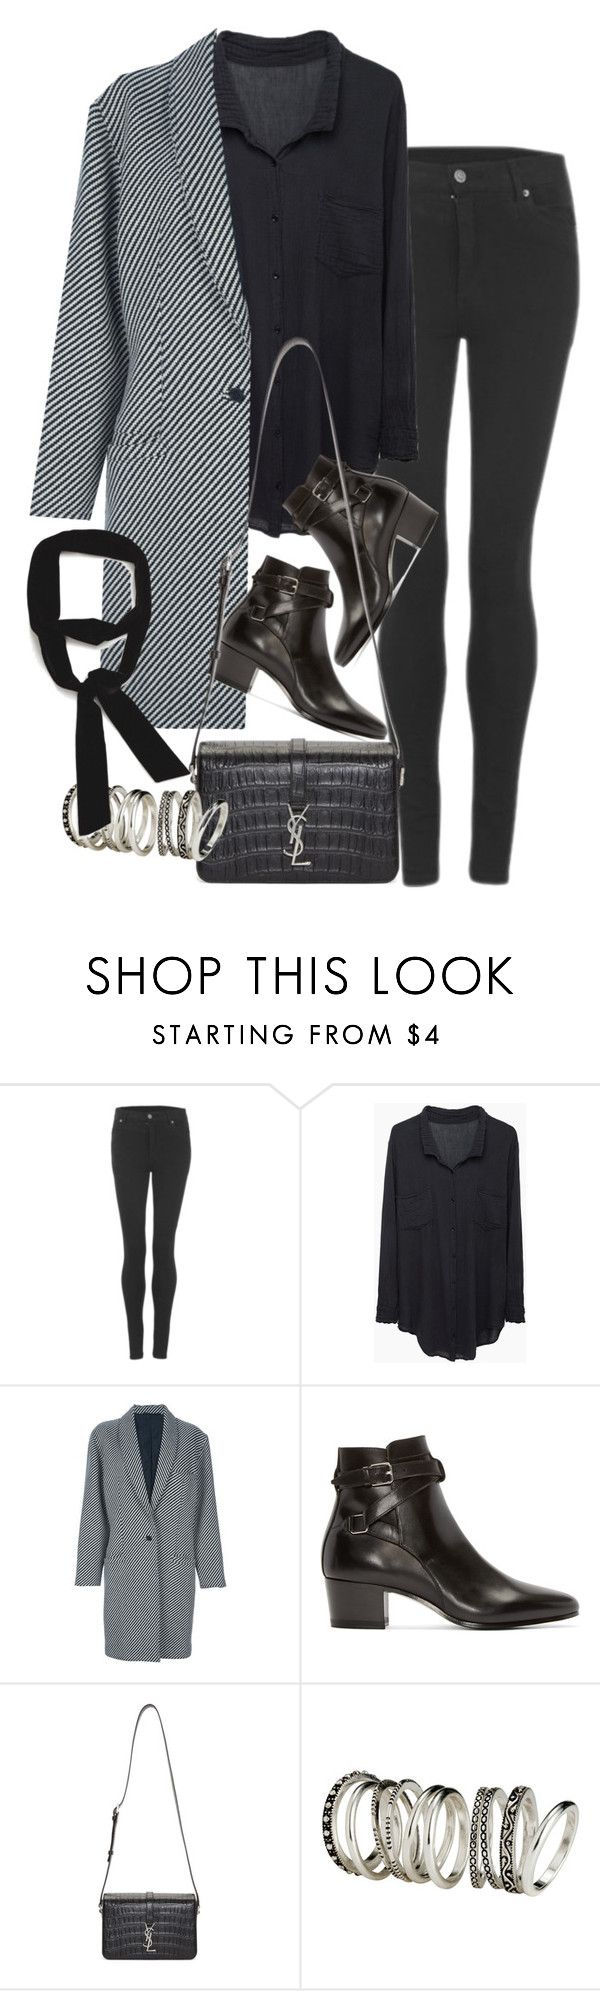 """""""Untitled #8657"""" by nikka-phillips ❤ liked on Polyvore featuring Cheap Monday, Raquel Allegra, Versace, Yves Saint Laurent, H&M, Zara, women's clothing, women, female and woman"""